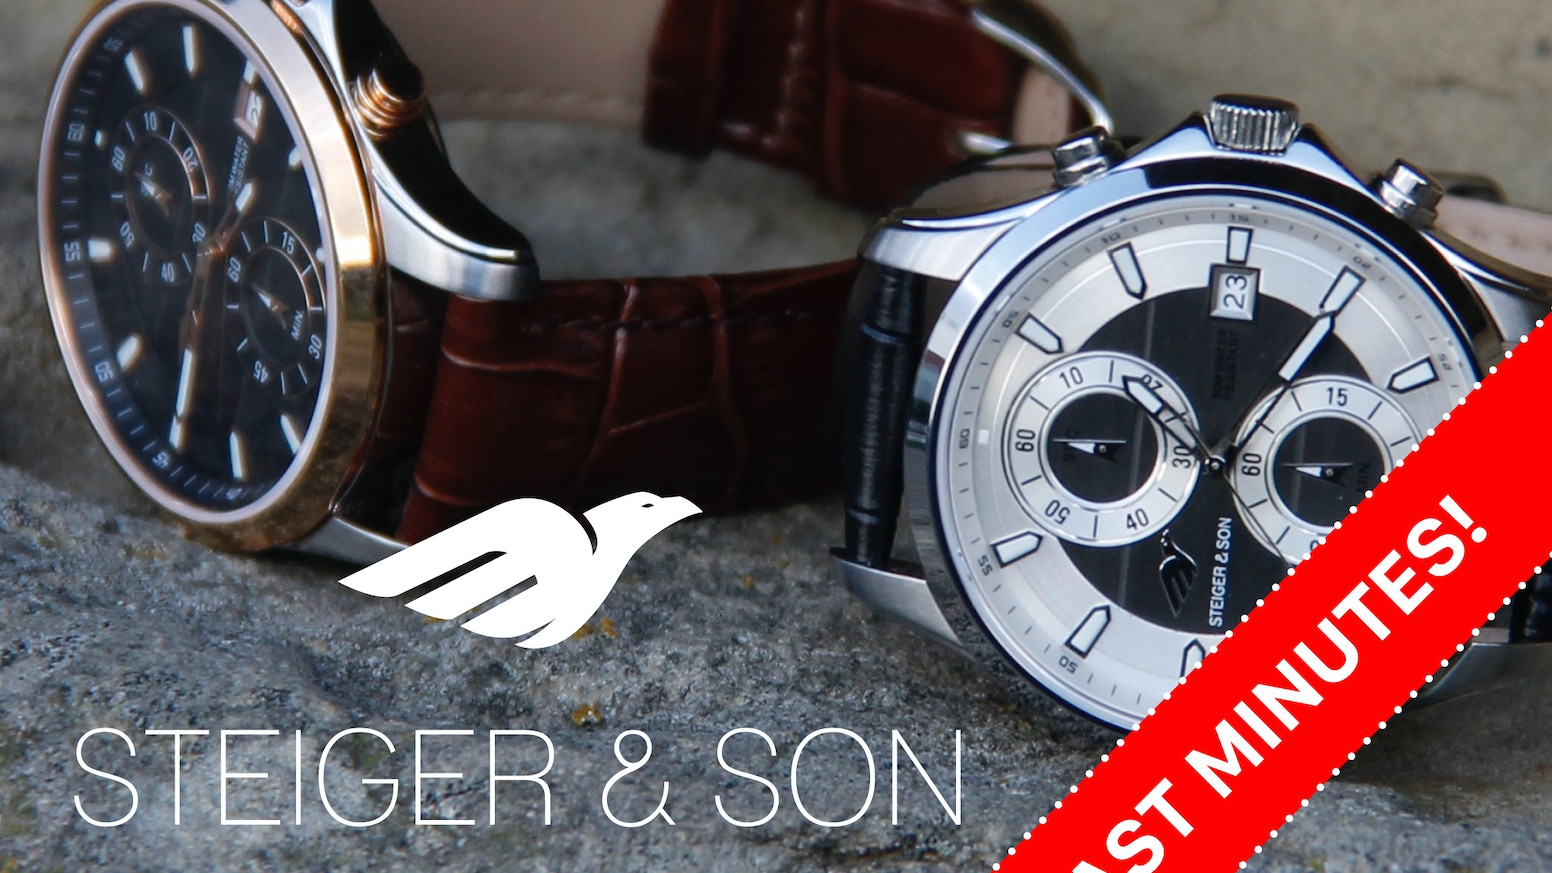 LIMITED TO 500 PIECES. Steiger & Son stands for revolutionary high quality watches at an affordable price for everyone.